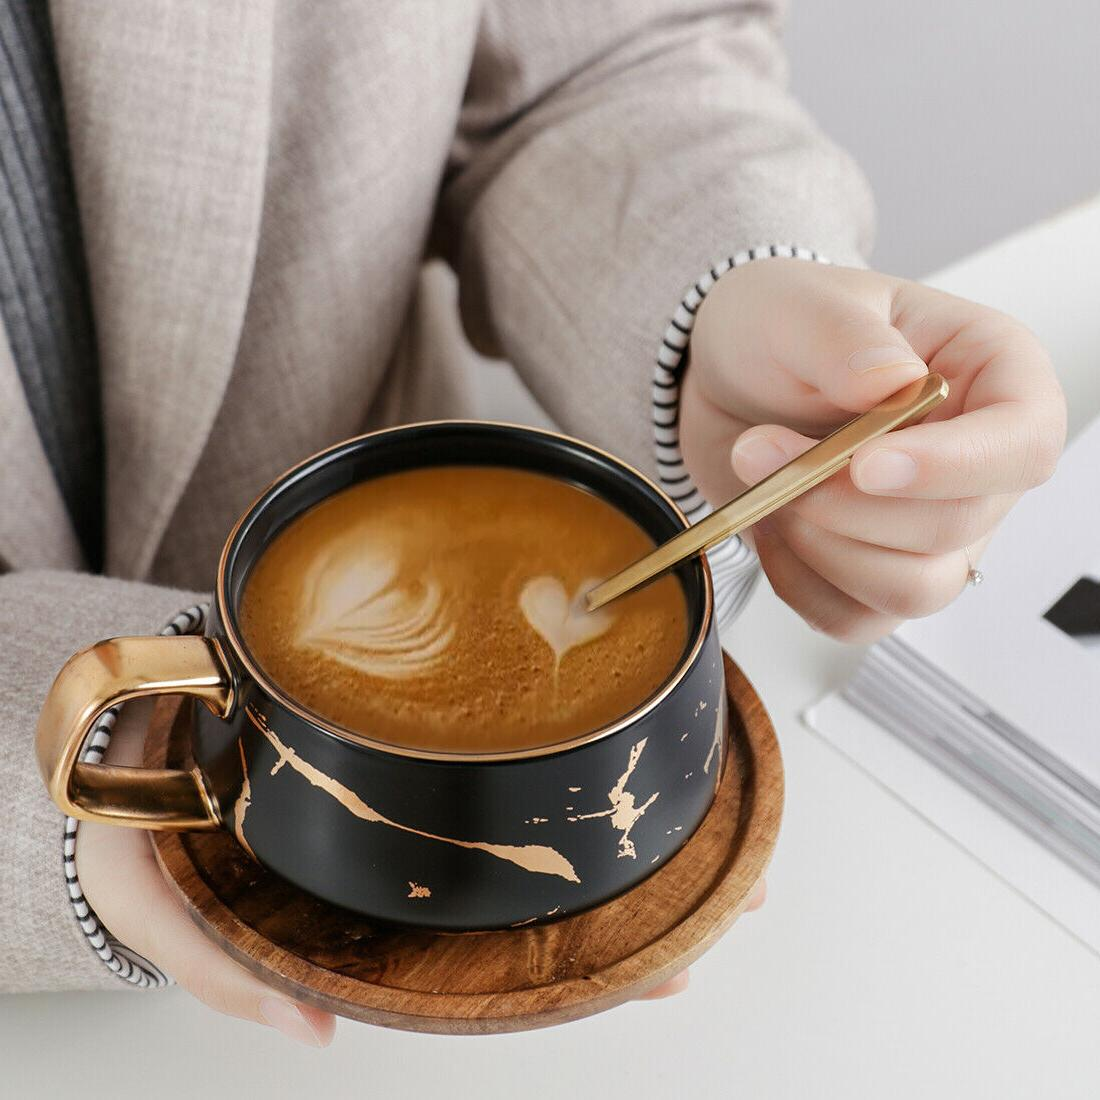 Tilany with Wooden Set - Ceramic - Coffee oz